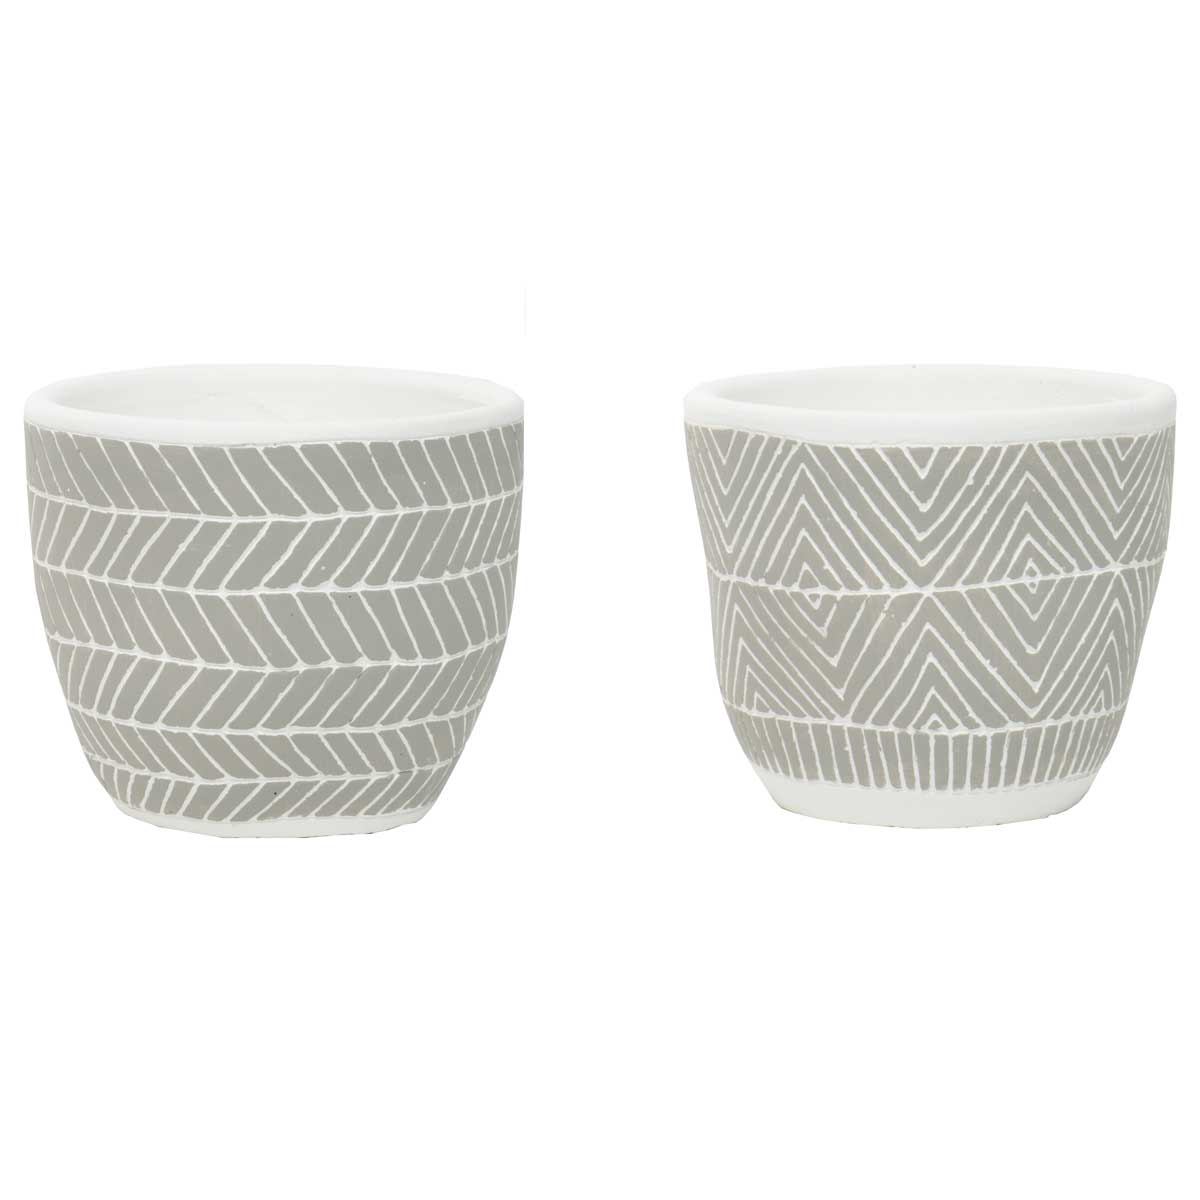 "DECORATIVE MESA AND YUMA POTS 6.5""X5"" SET OF 2"